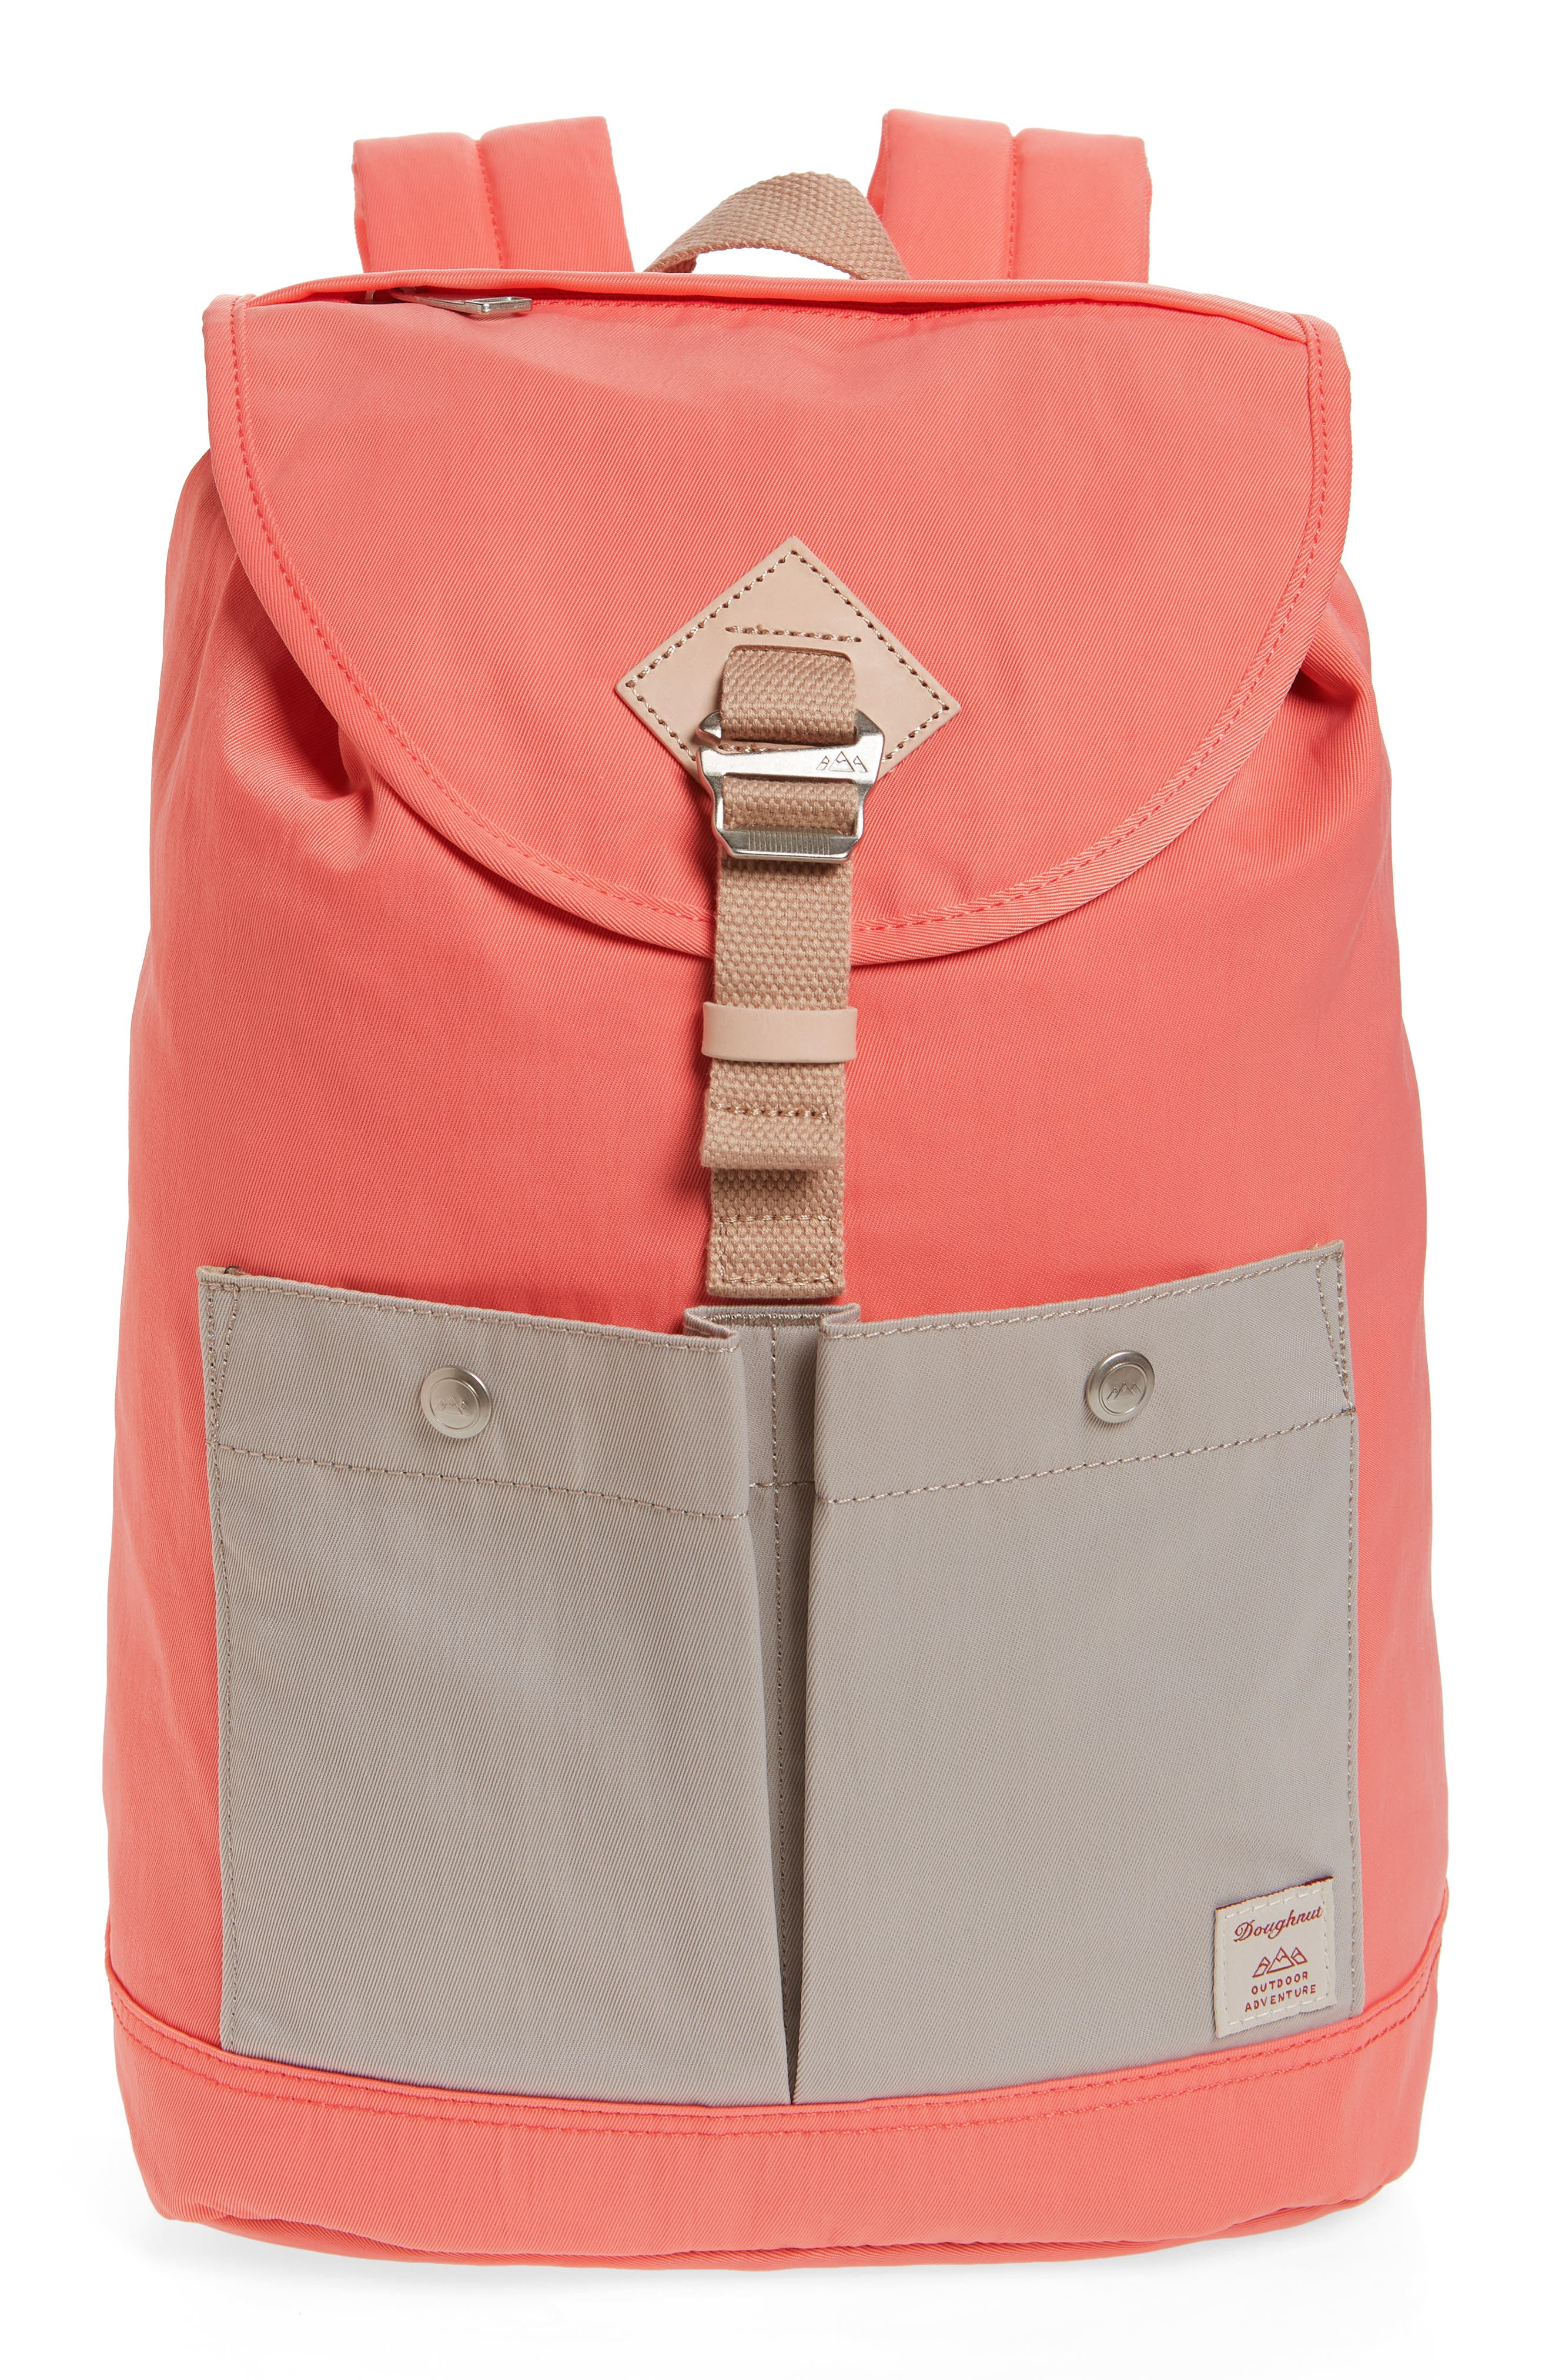 DOUGHNUT Montana Water Repellent Backpack - Pink in Peach/ Ivory